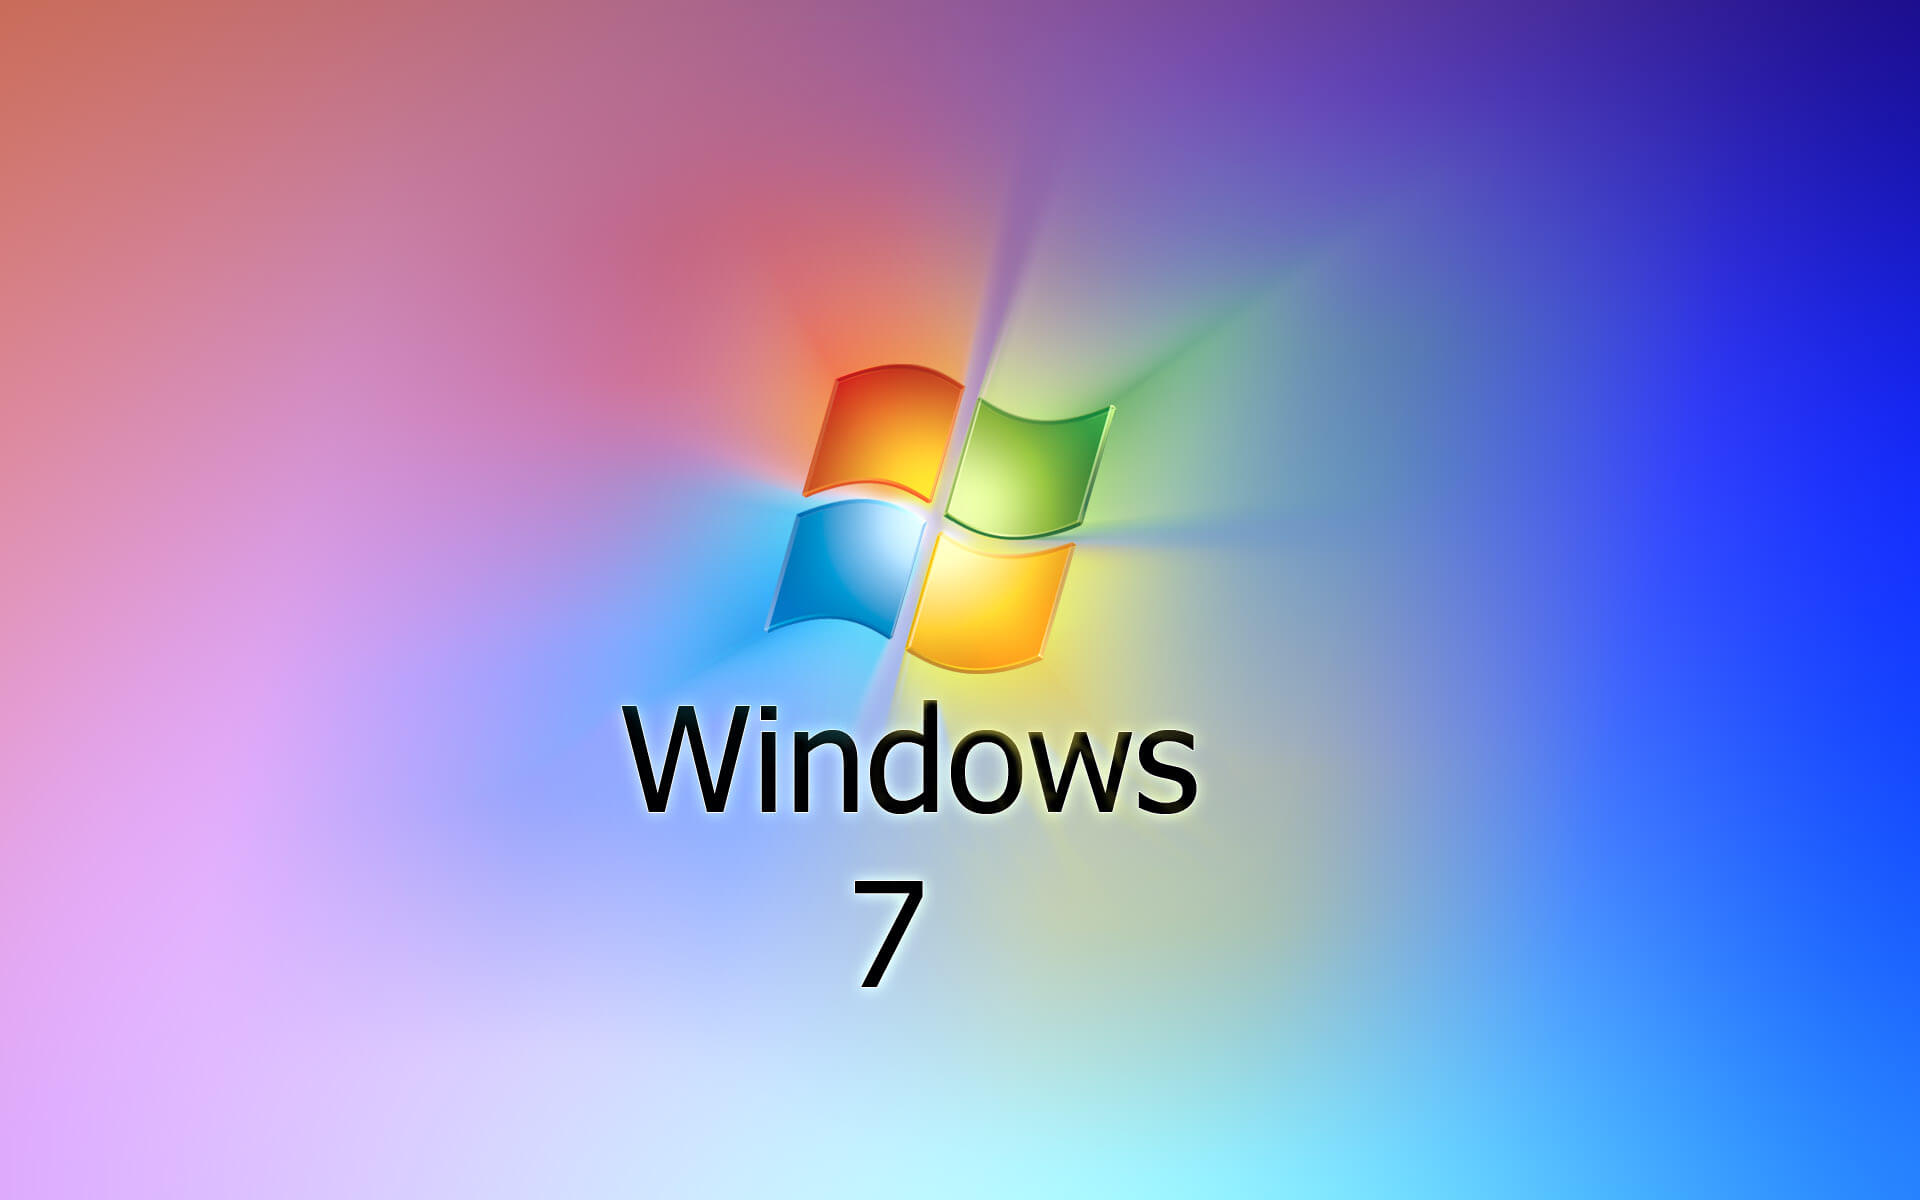 Windows 7 product key generator free download 32 64 bit for Windows windows